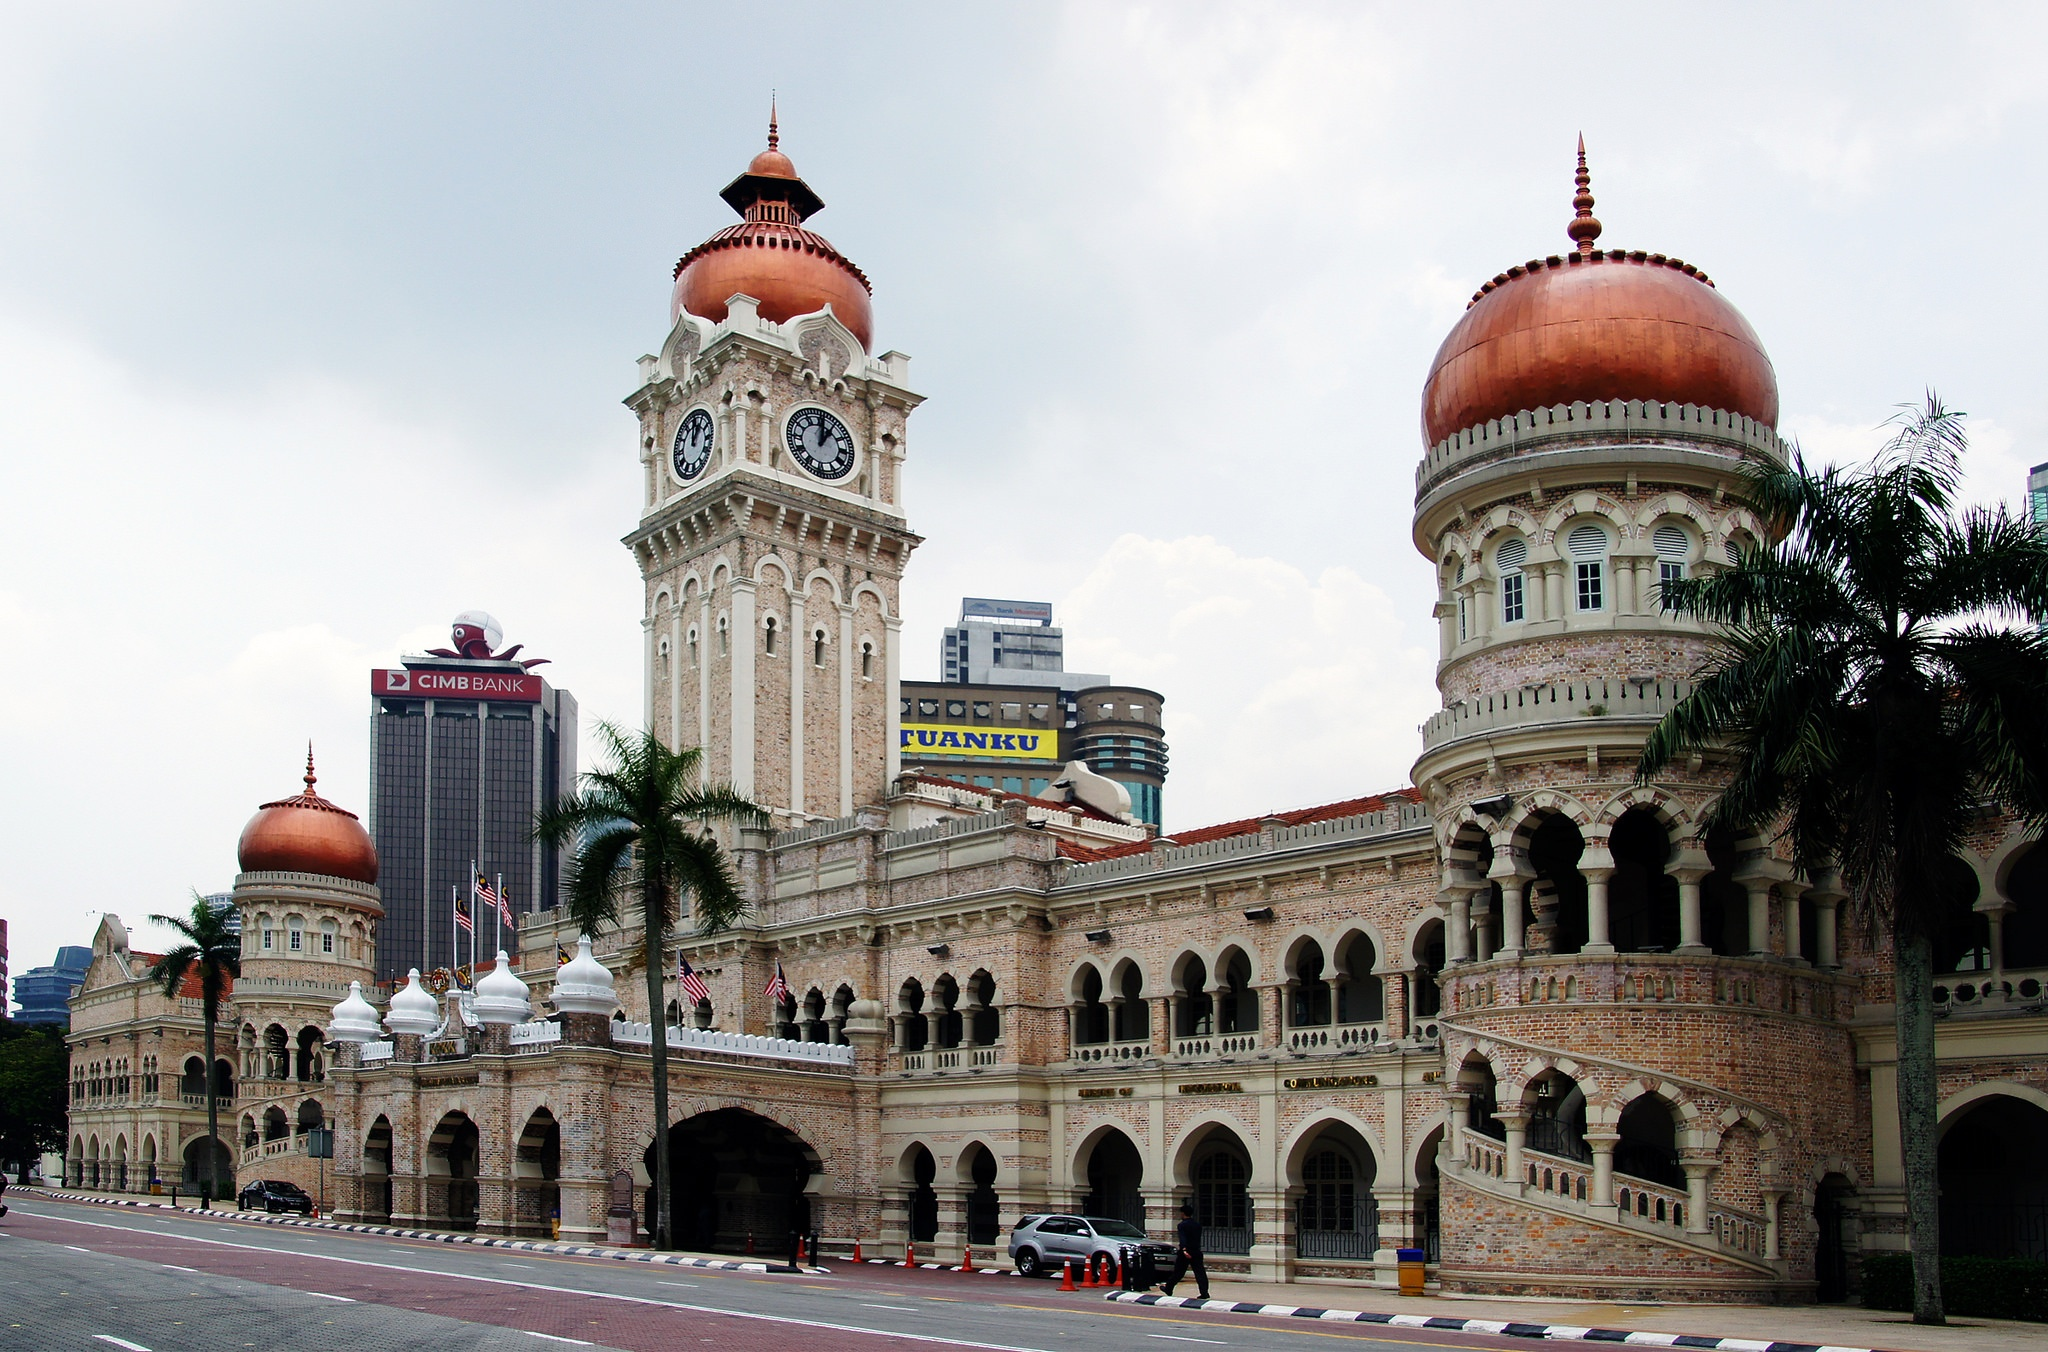 Exploring Colonial-era architecture while travelling Malaysia on a budget